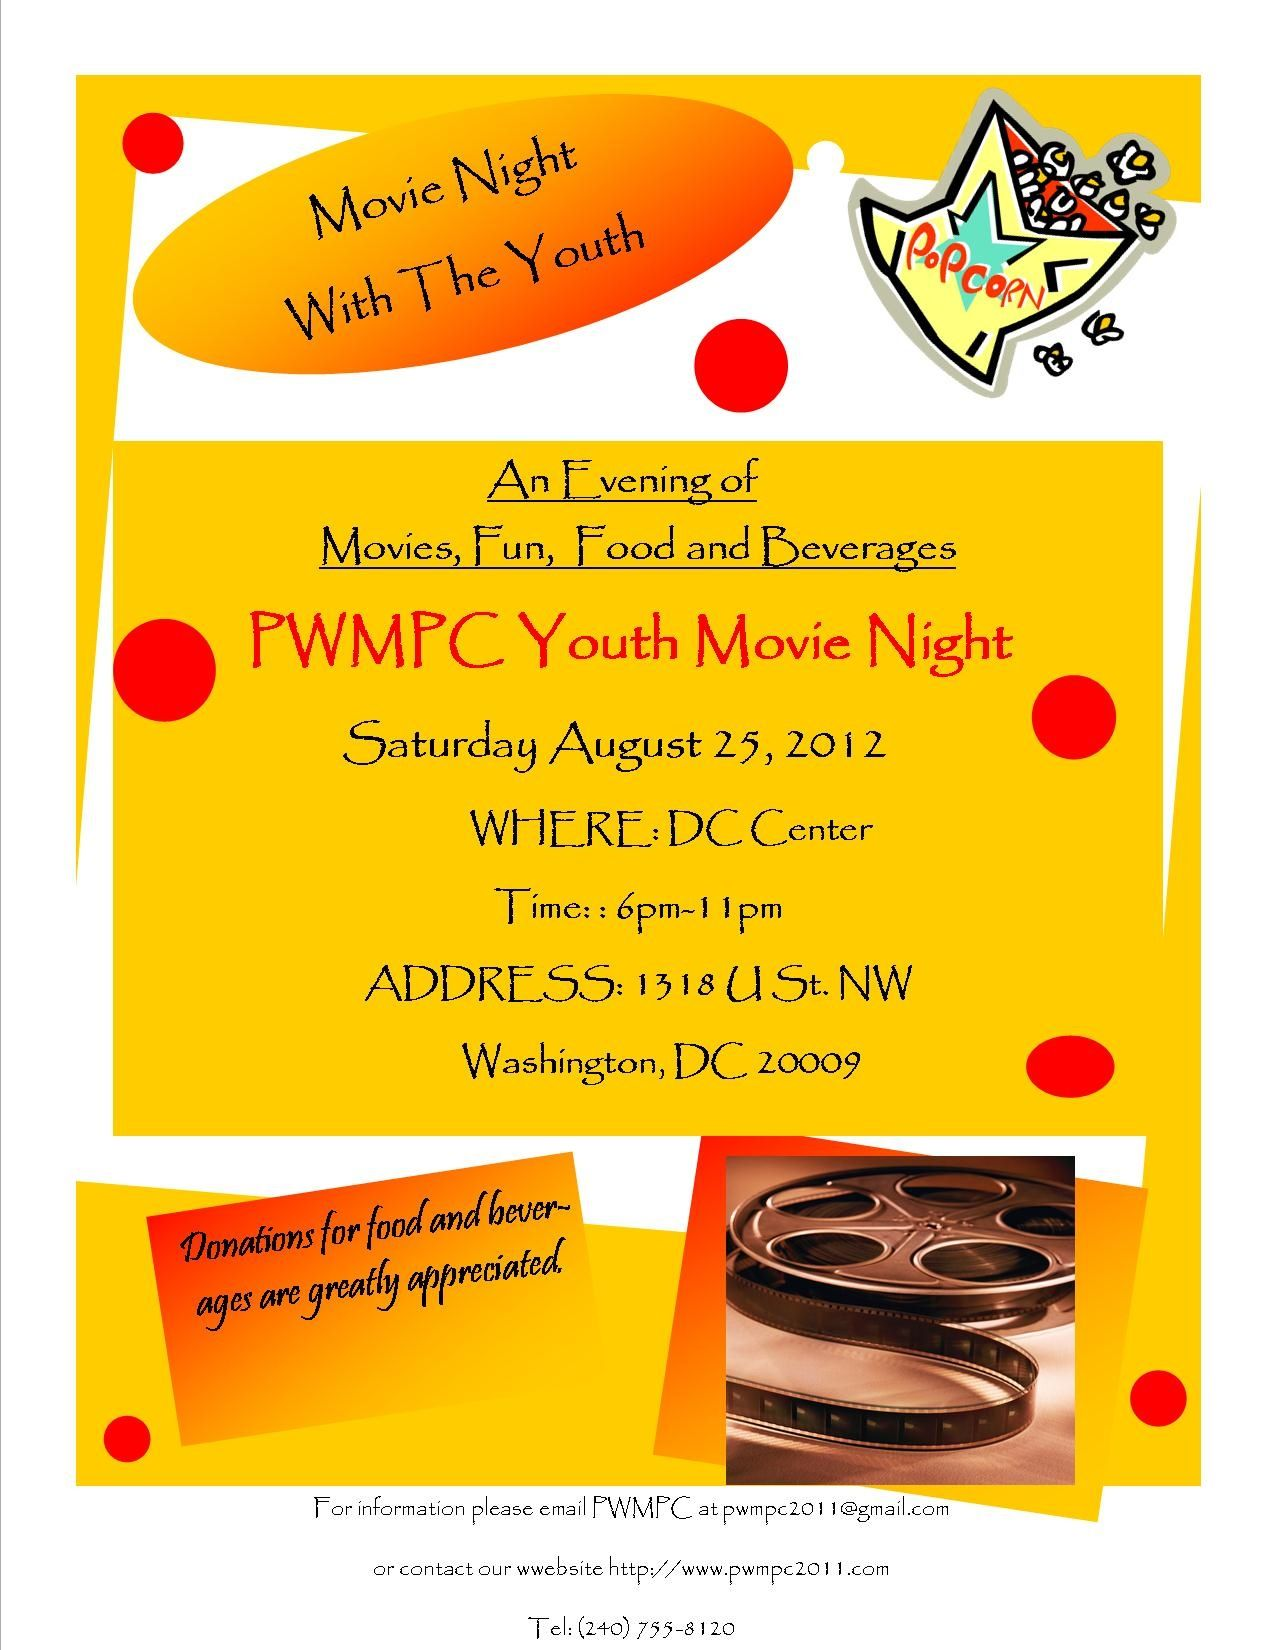 http://www.thedccenter.org/blog/2012/08/pwmpc-youth-movie-night.html